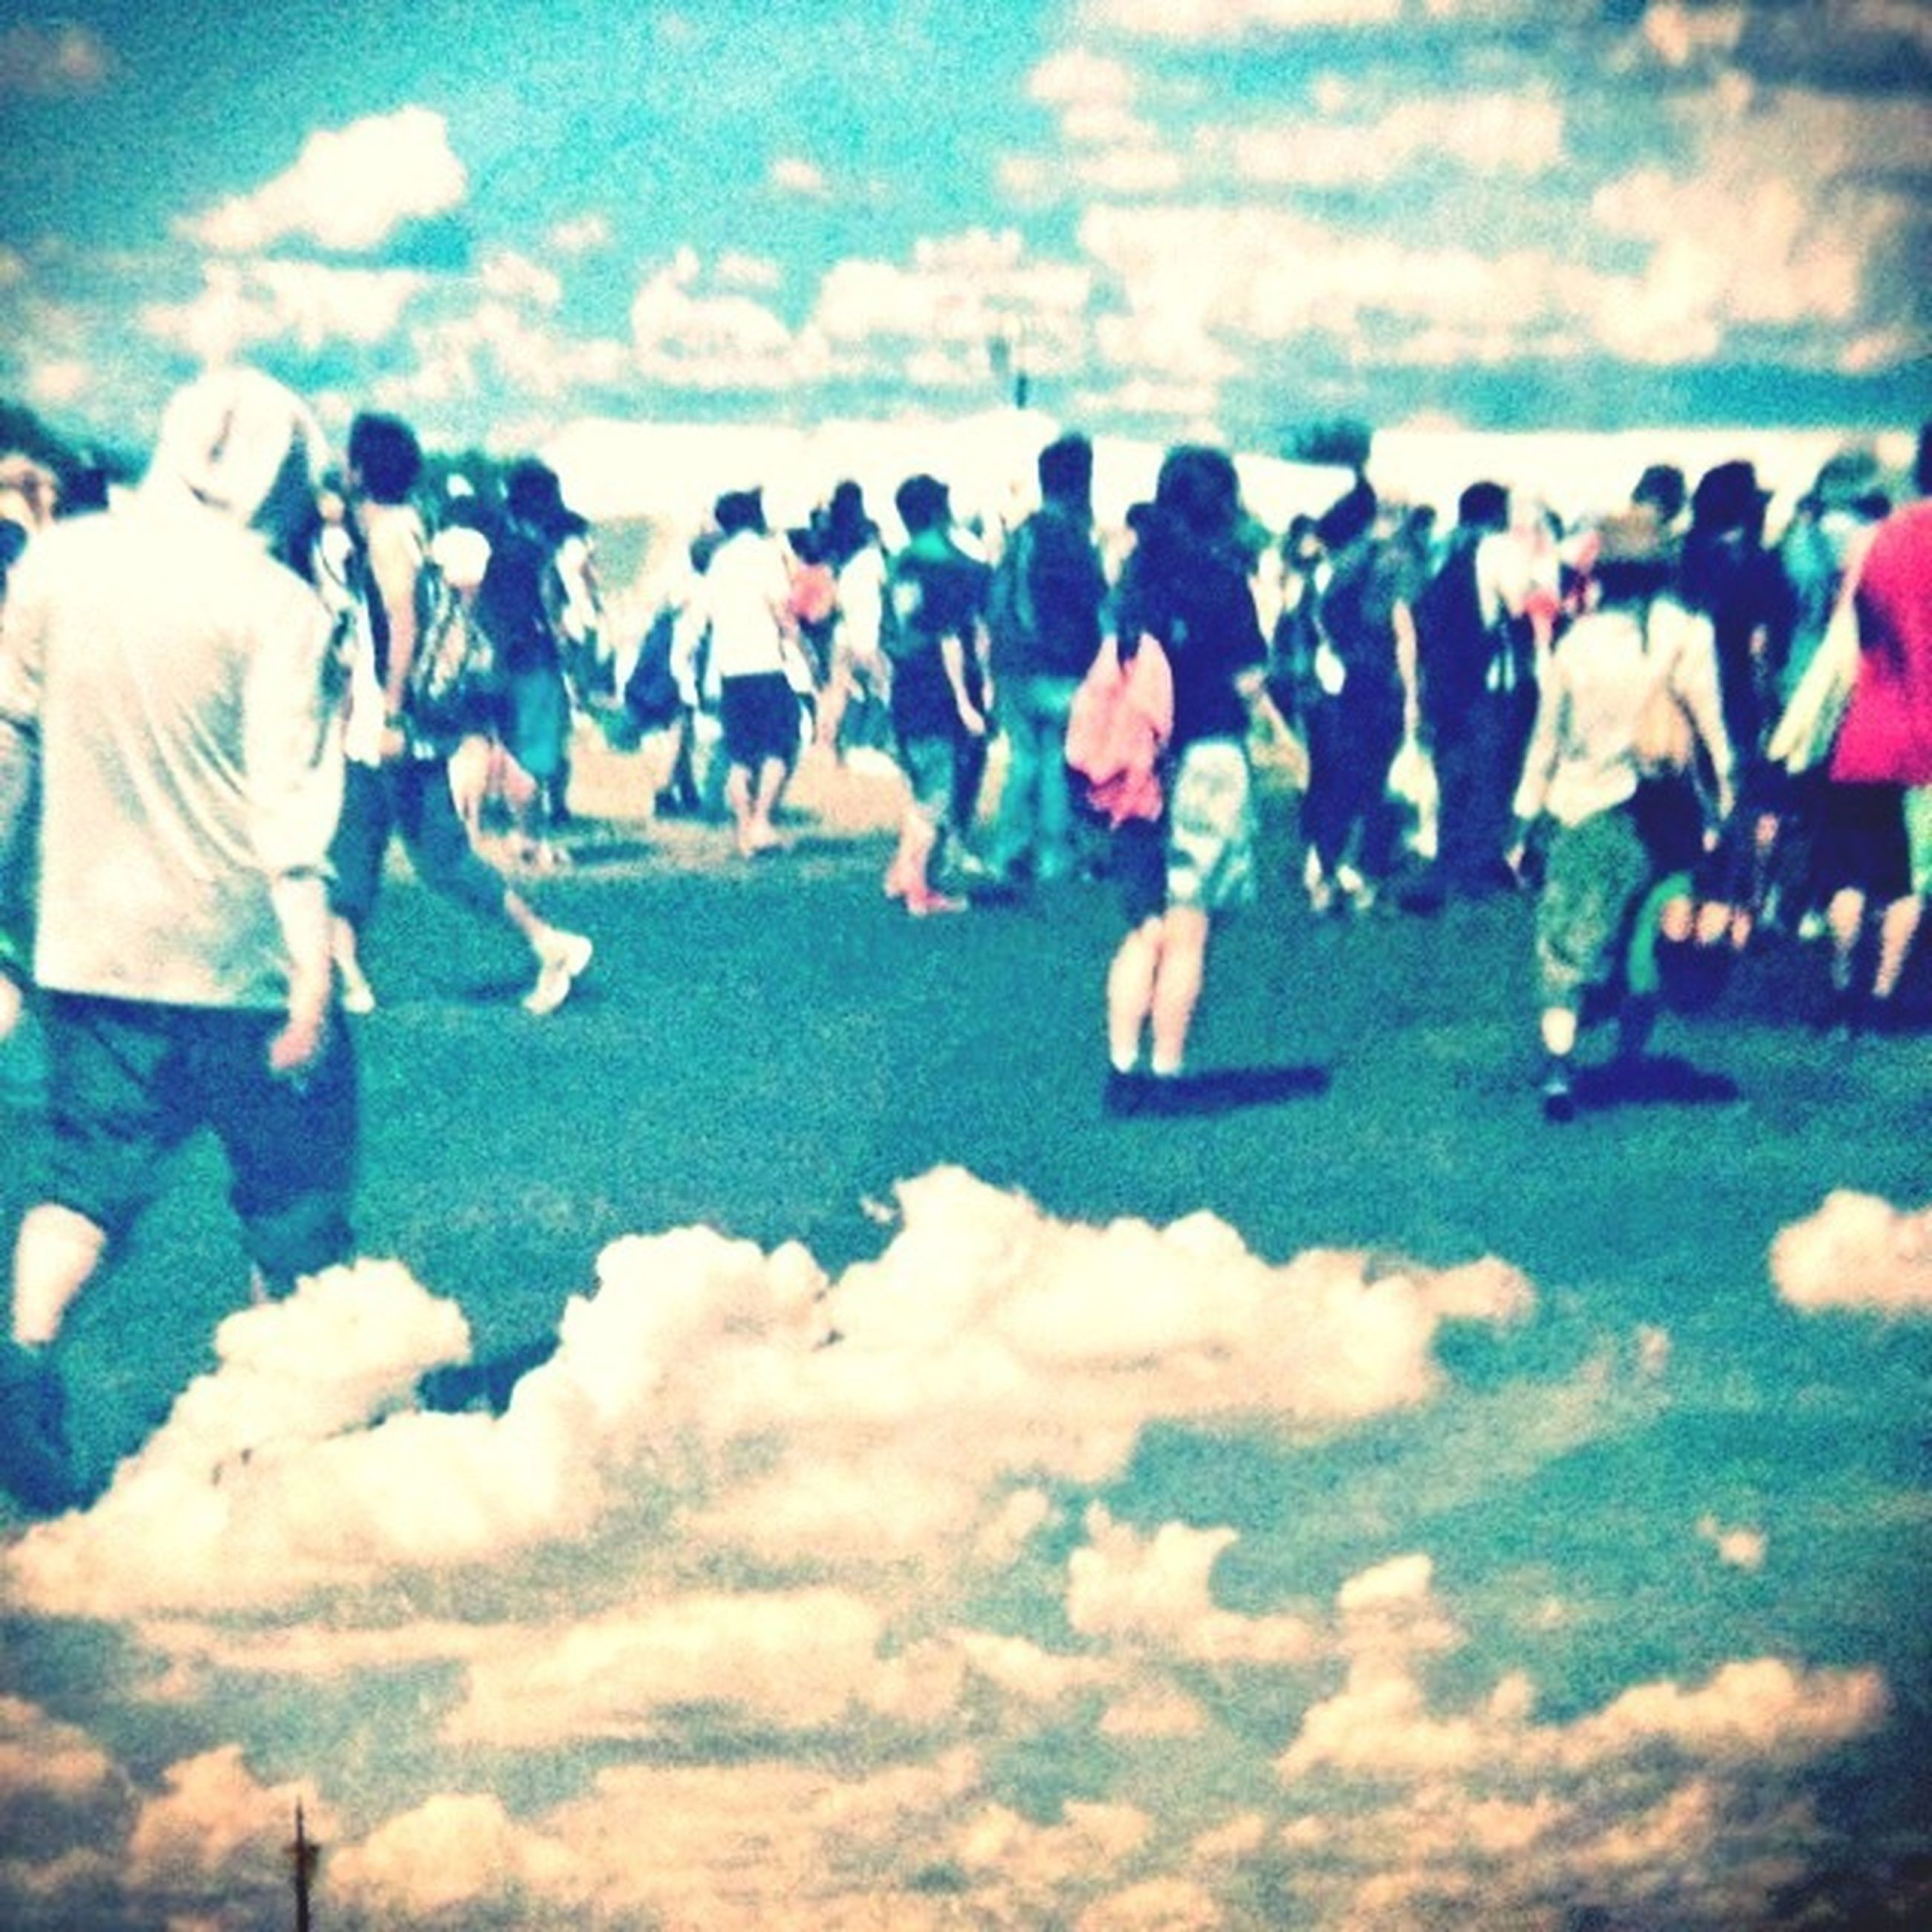 lifestyles, men, leisure activity, large group of people, person, sky, cloud - sky, togetherness, standing, casual clothing, day, outdoors, cloud, cloudy, vacations, nature, field, walking, landscape